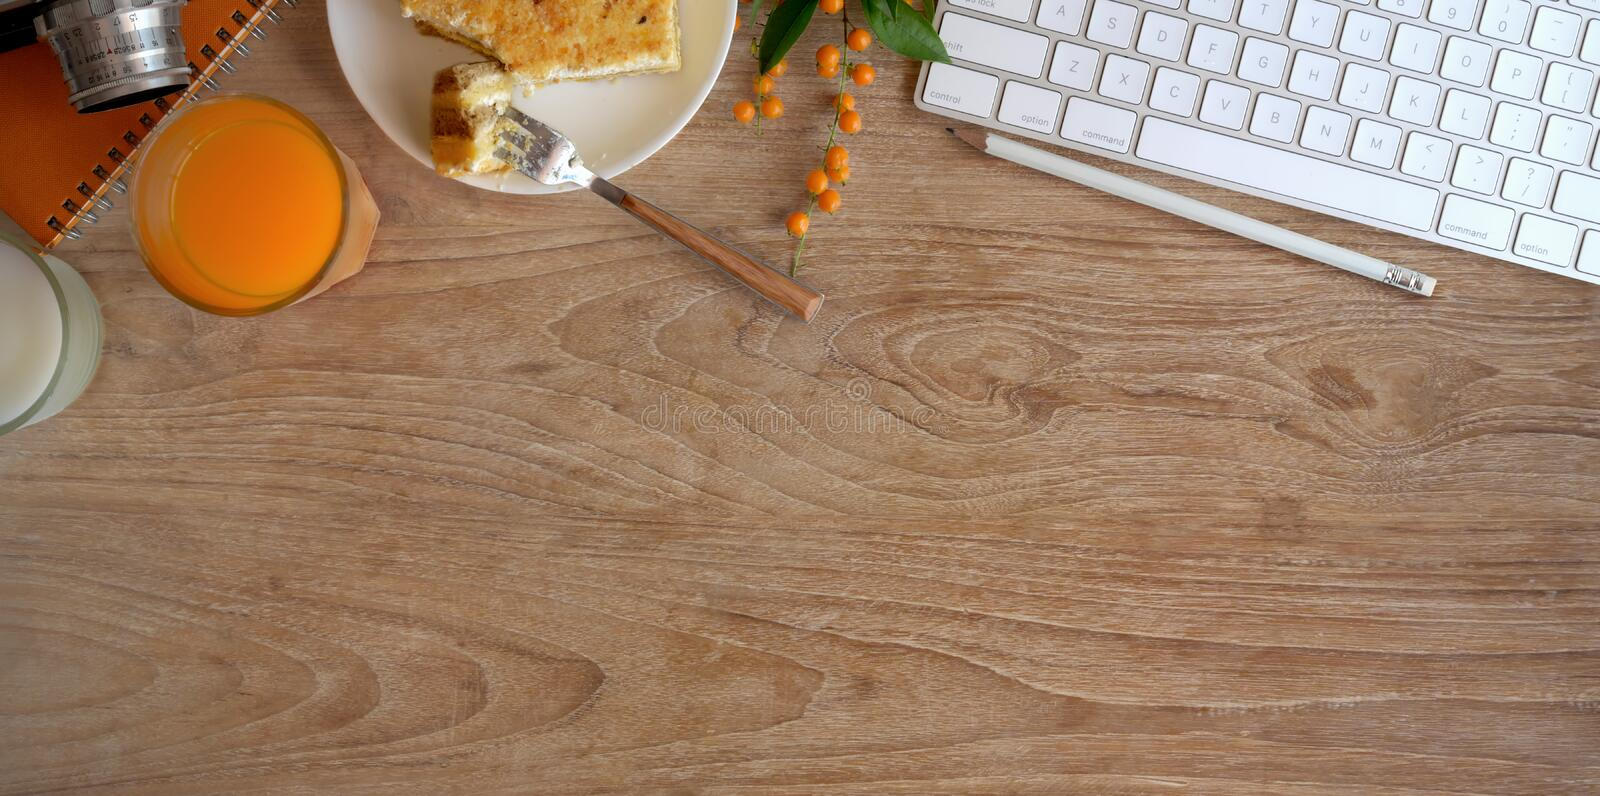 Top view of cozy workspace with a glass of orange juice and toast bread on wooden table royalty free stock image